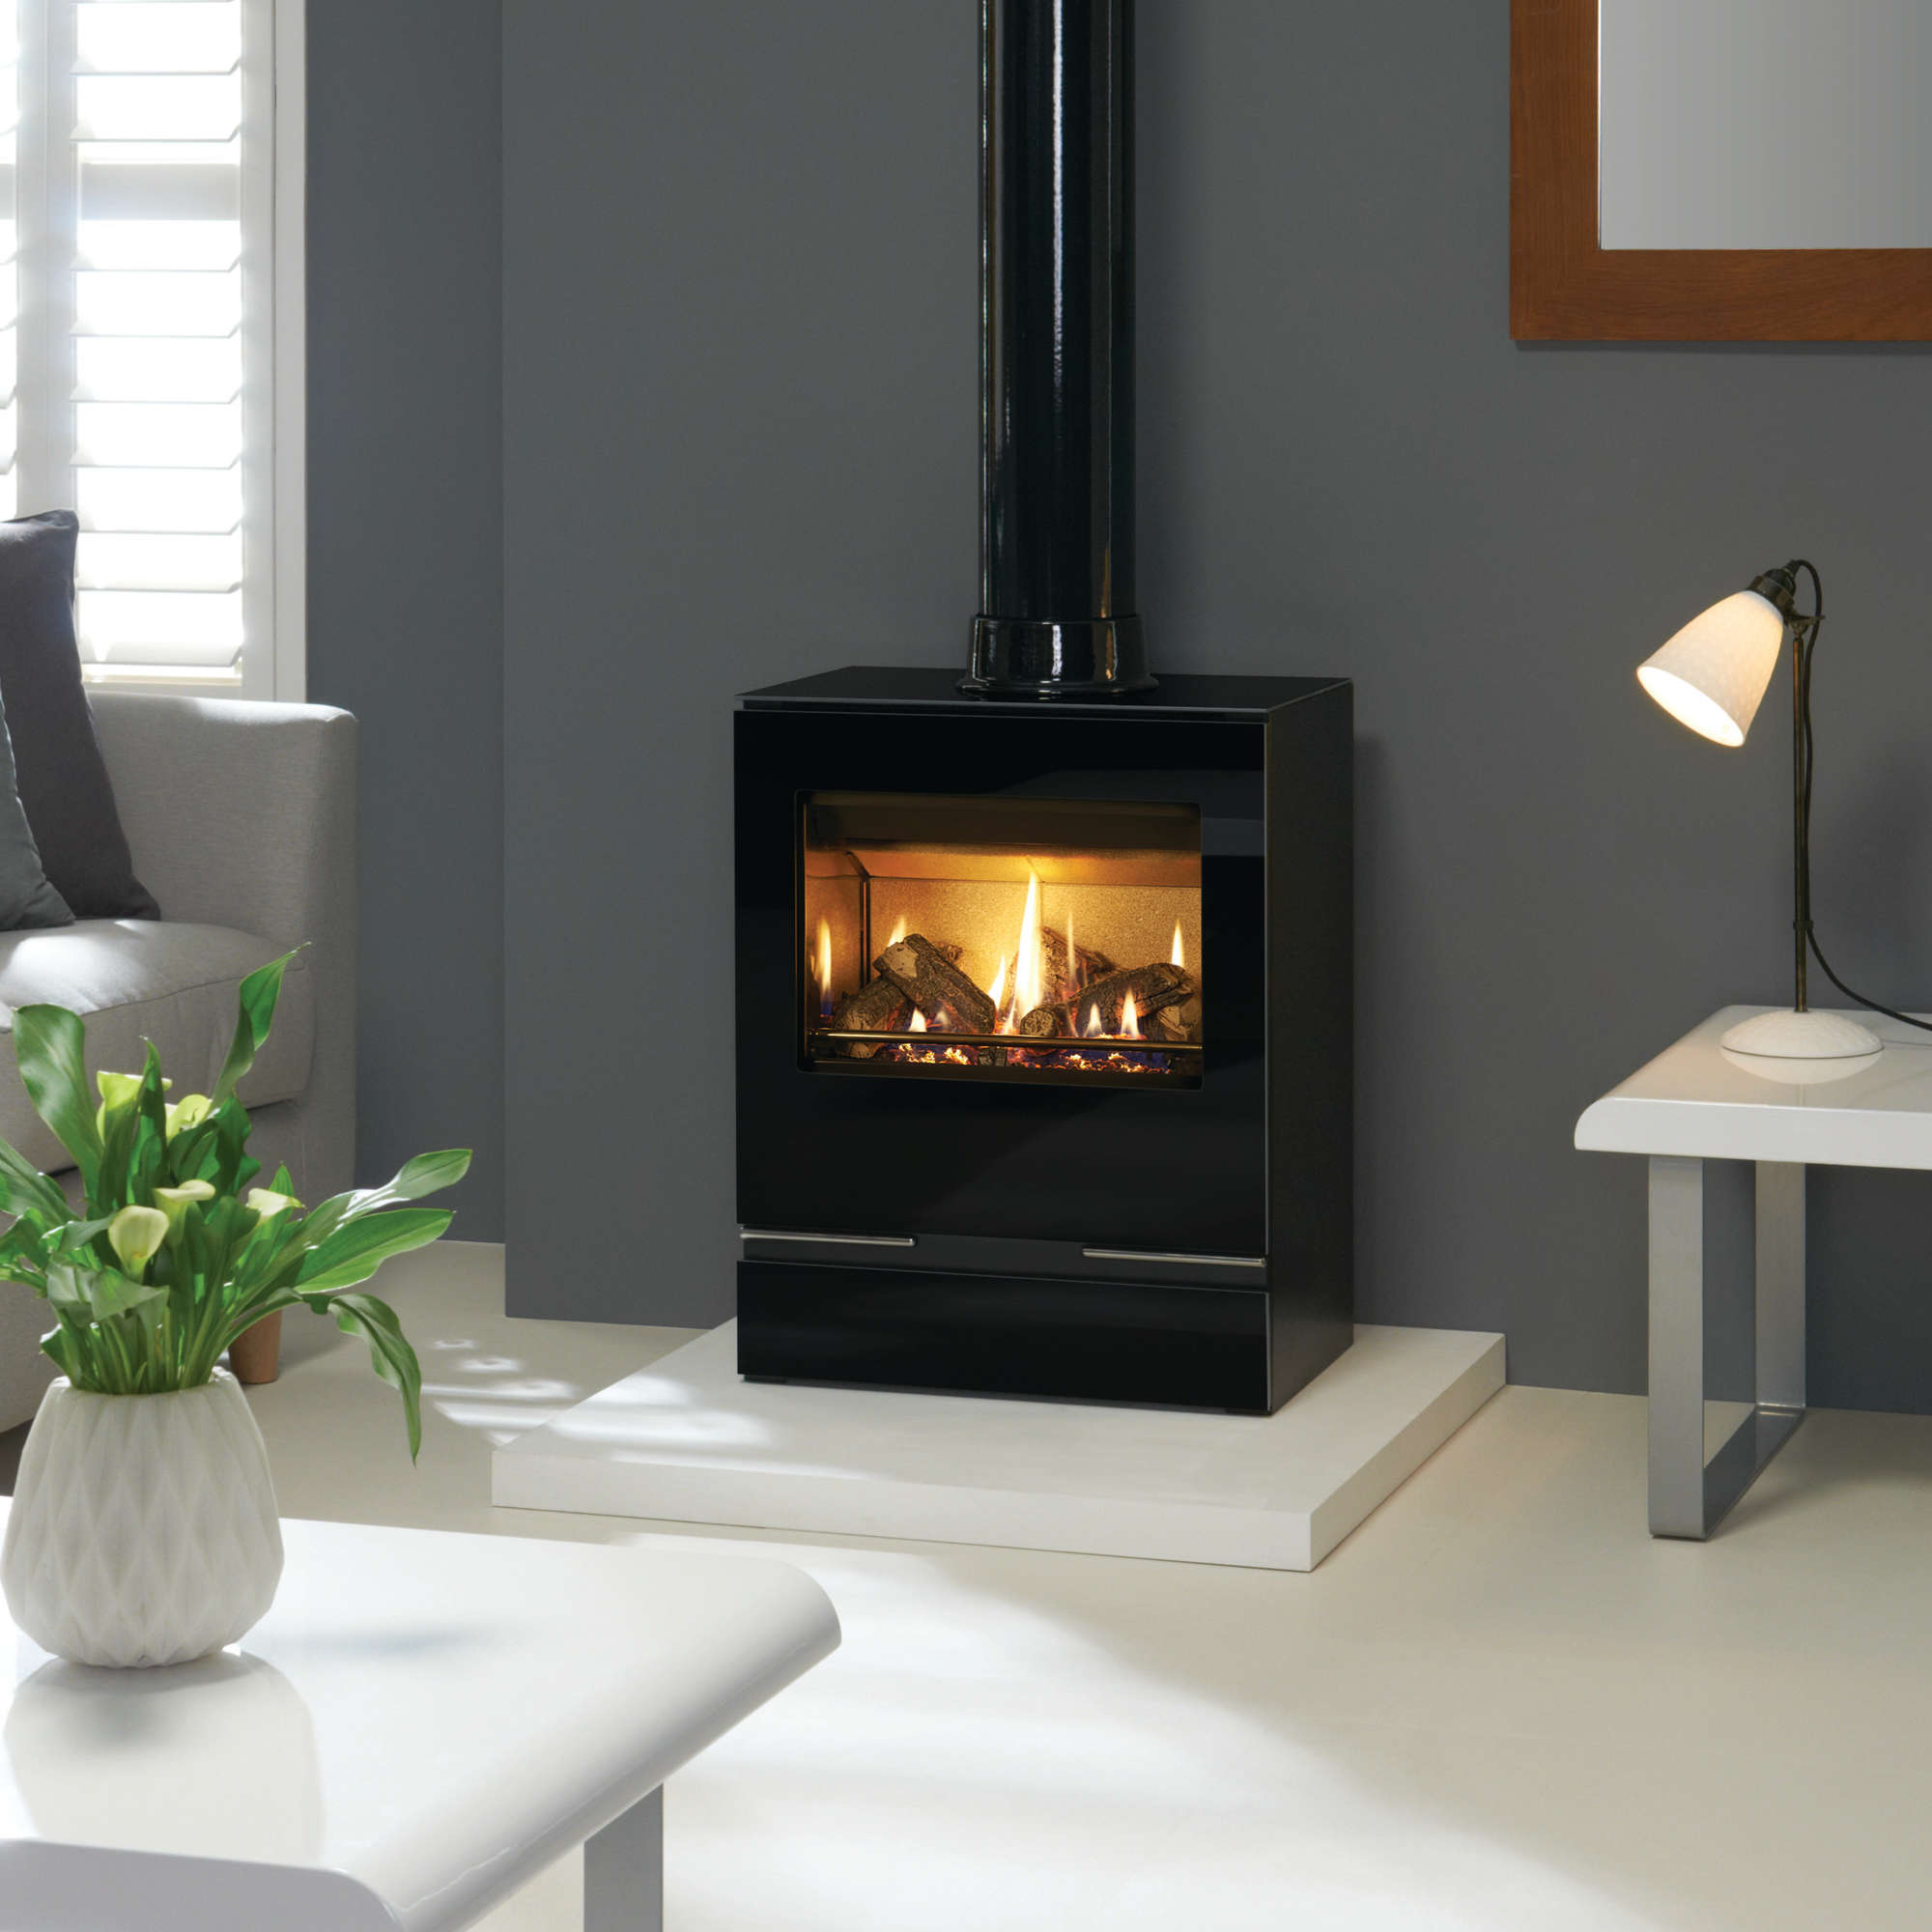 An image of Gazco Vision Medium Gas Stove - Conventional Flue - Natural Gas - Top